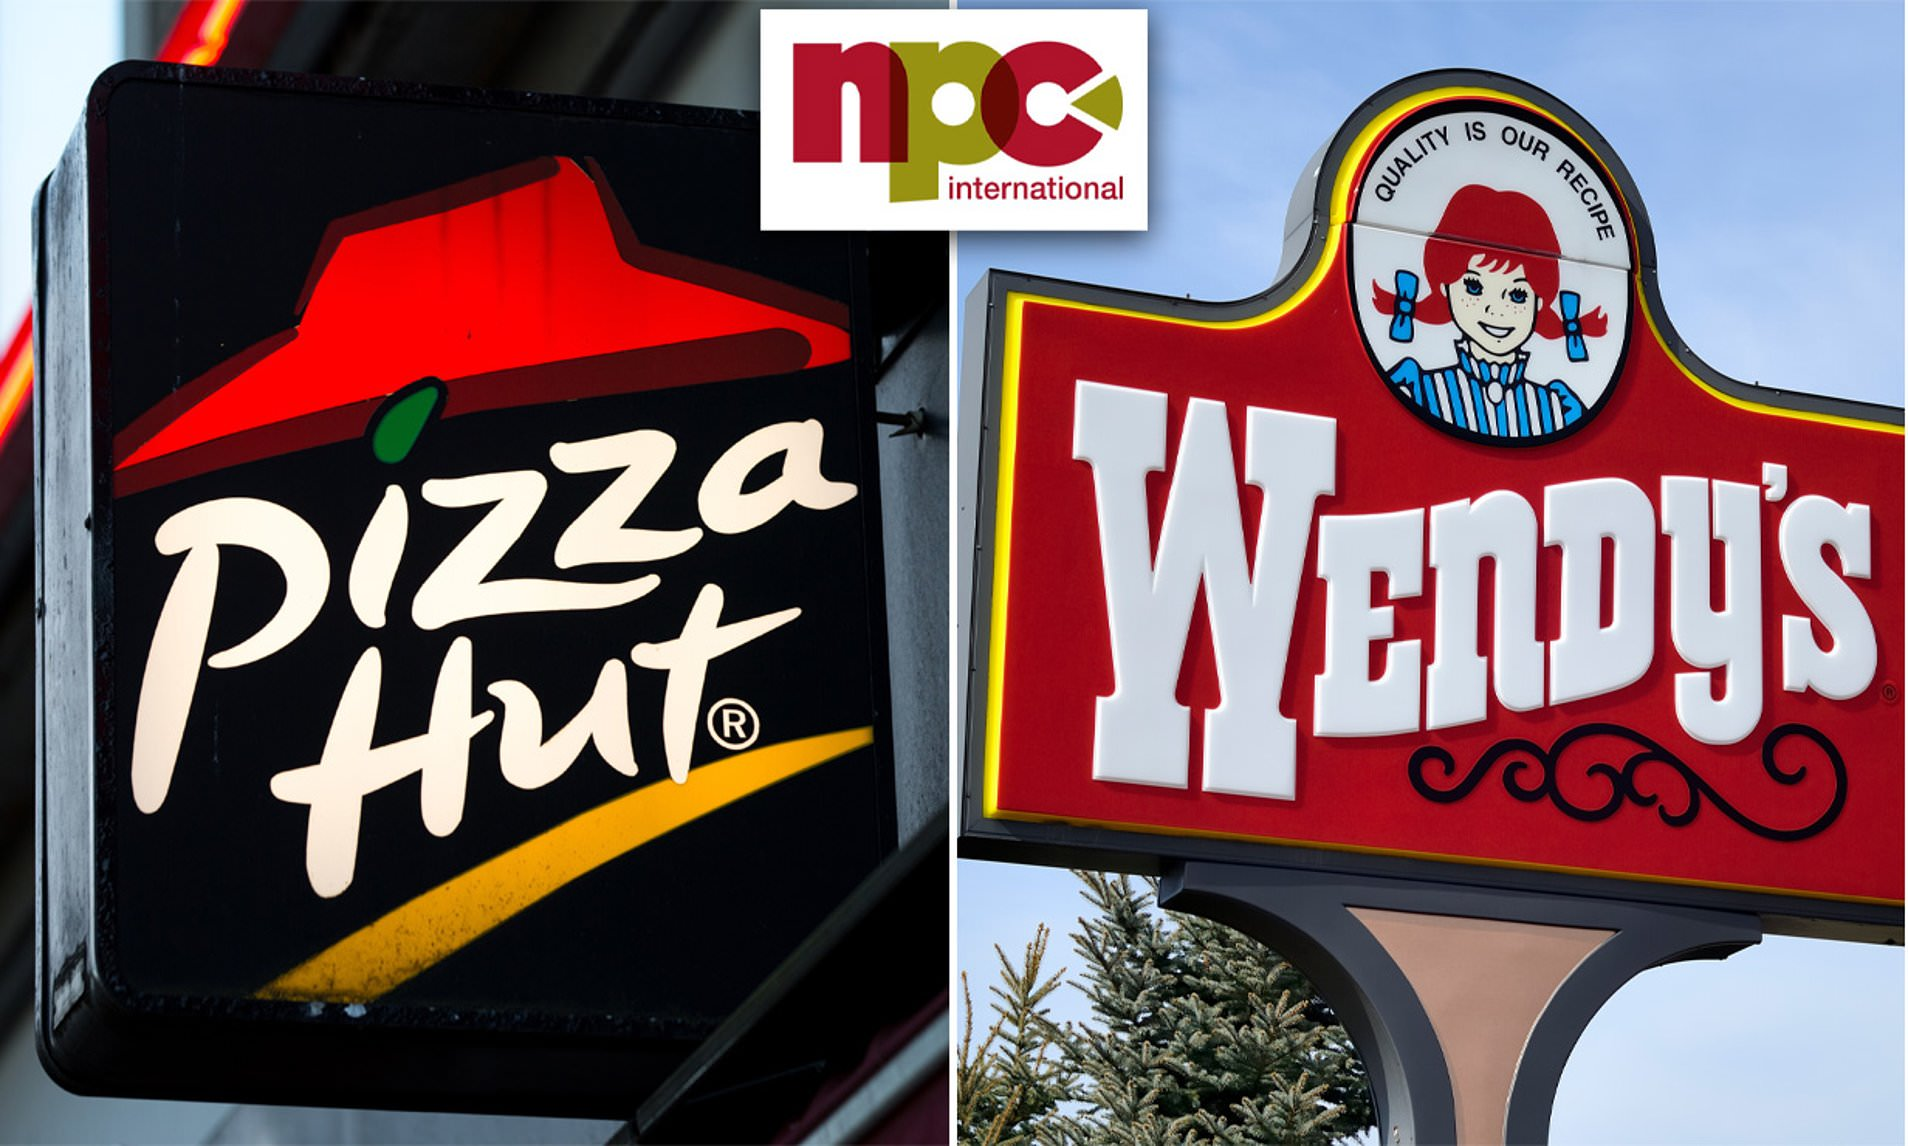 A Huge Wendy's and Pizza Hut franchise filed for bankruptcy due to Covid-19